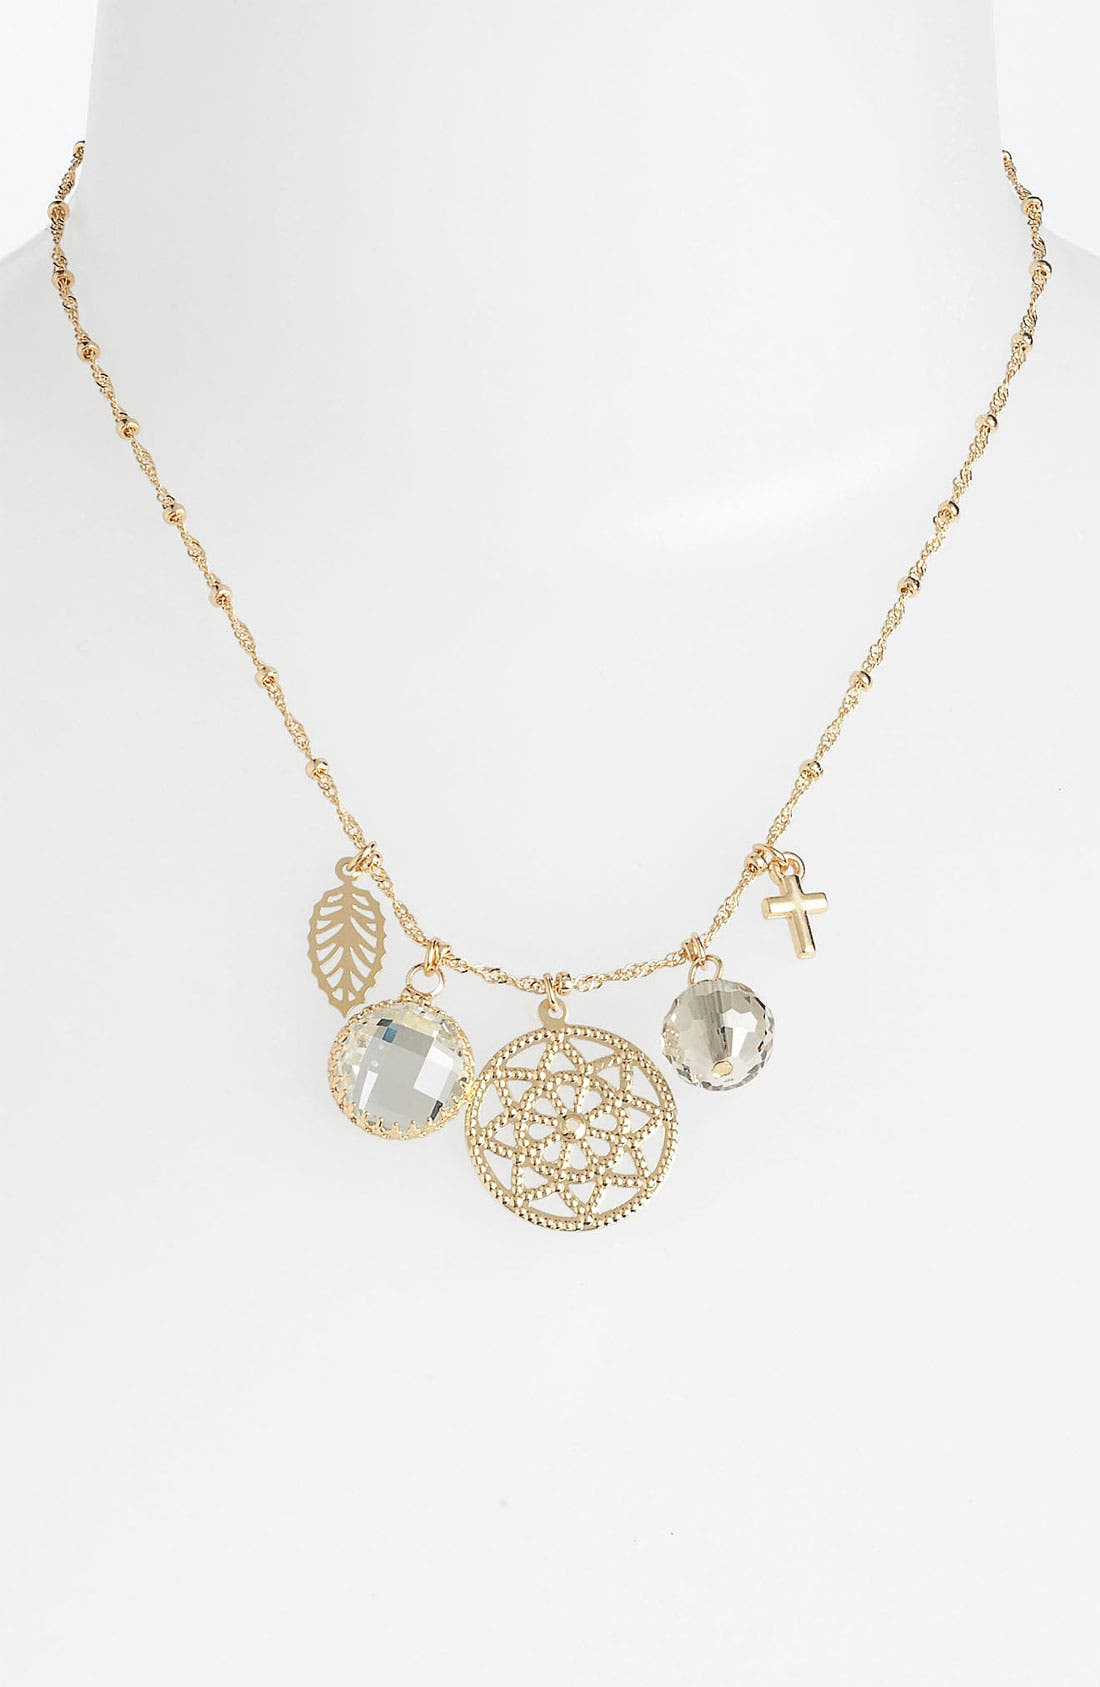 Alternate Image 1 Selected - Nordstrom 'Treasures' Cluster Pendant Necklace (Special Purchase)